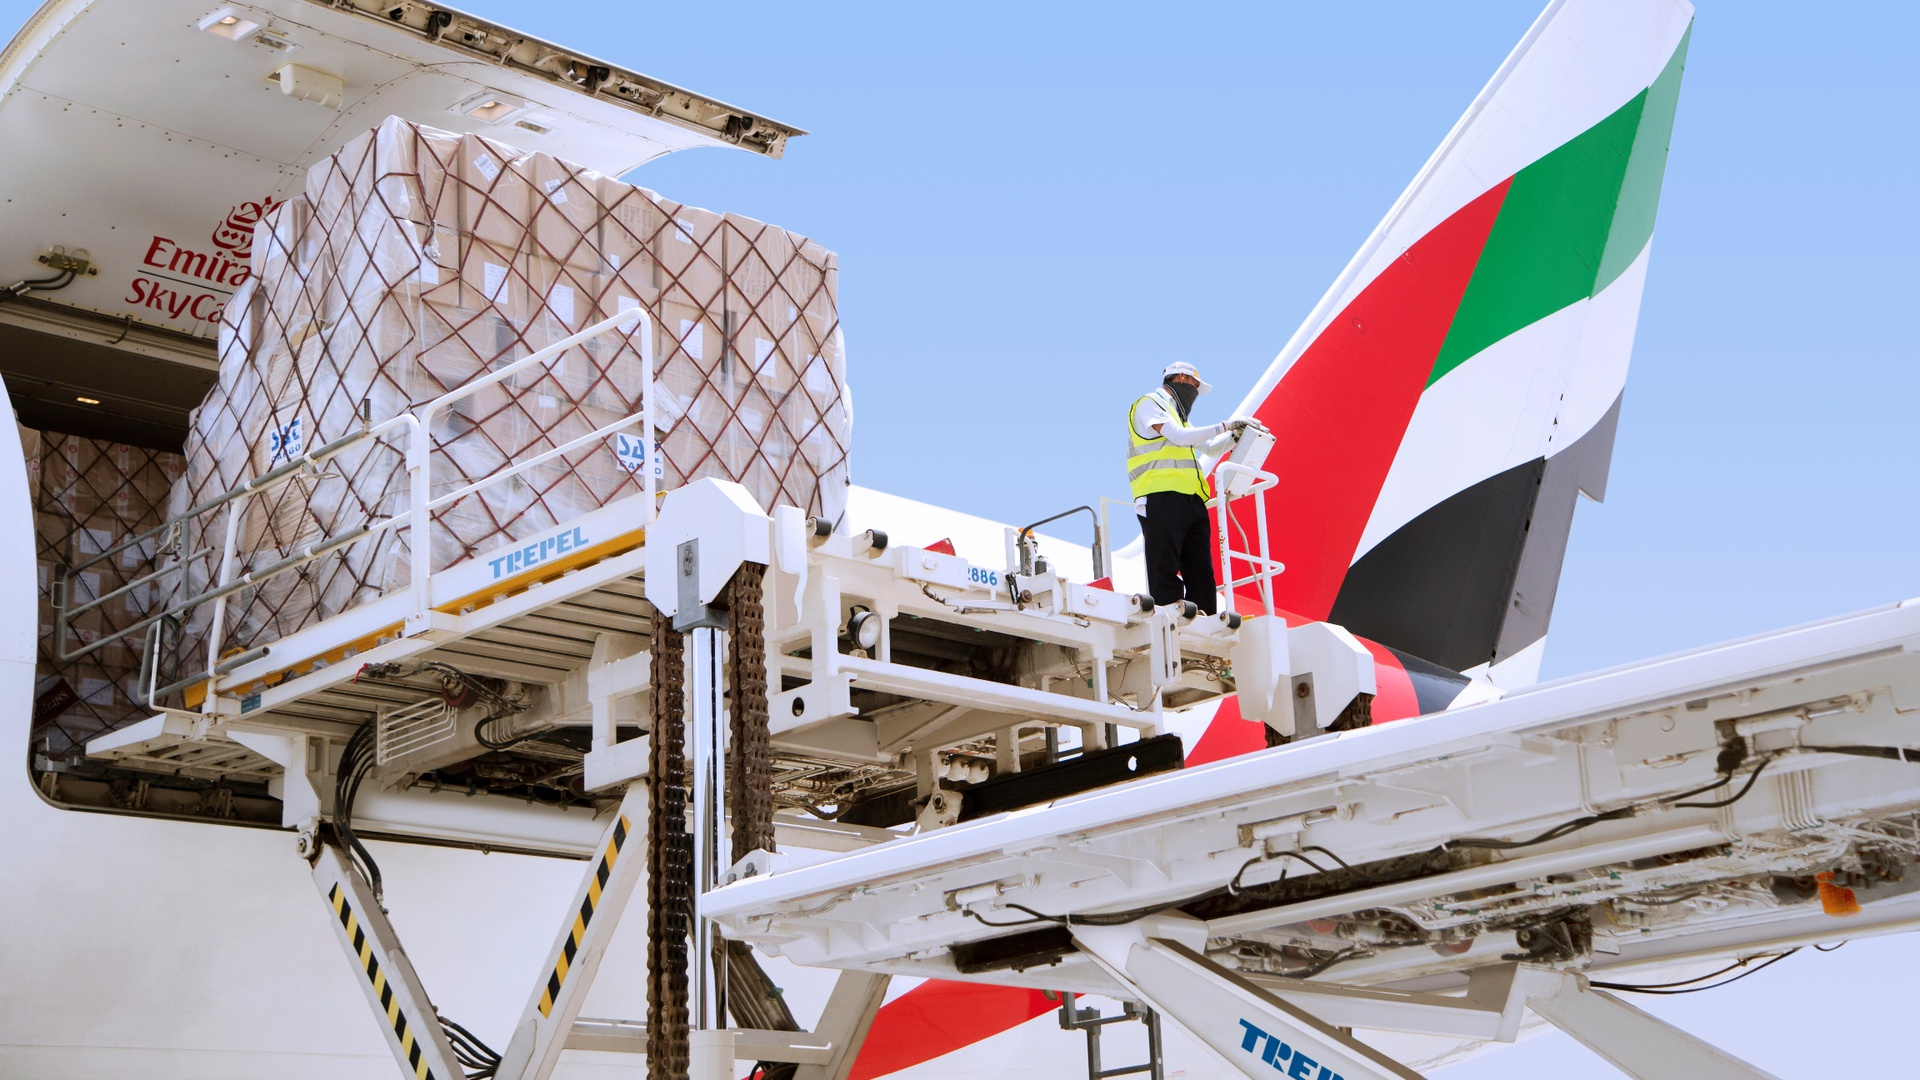 Emirates SkyCargo facilitates global trade in perishables through its network spanning six continents and through its modern fleet and infrastructure.